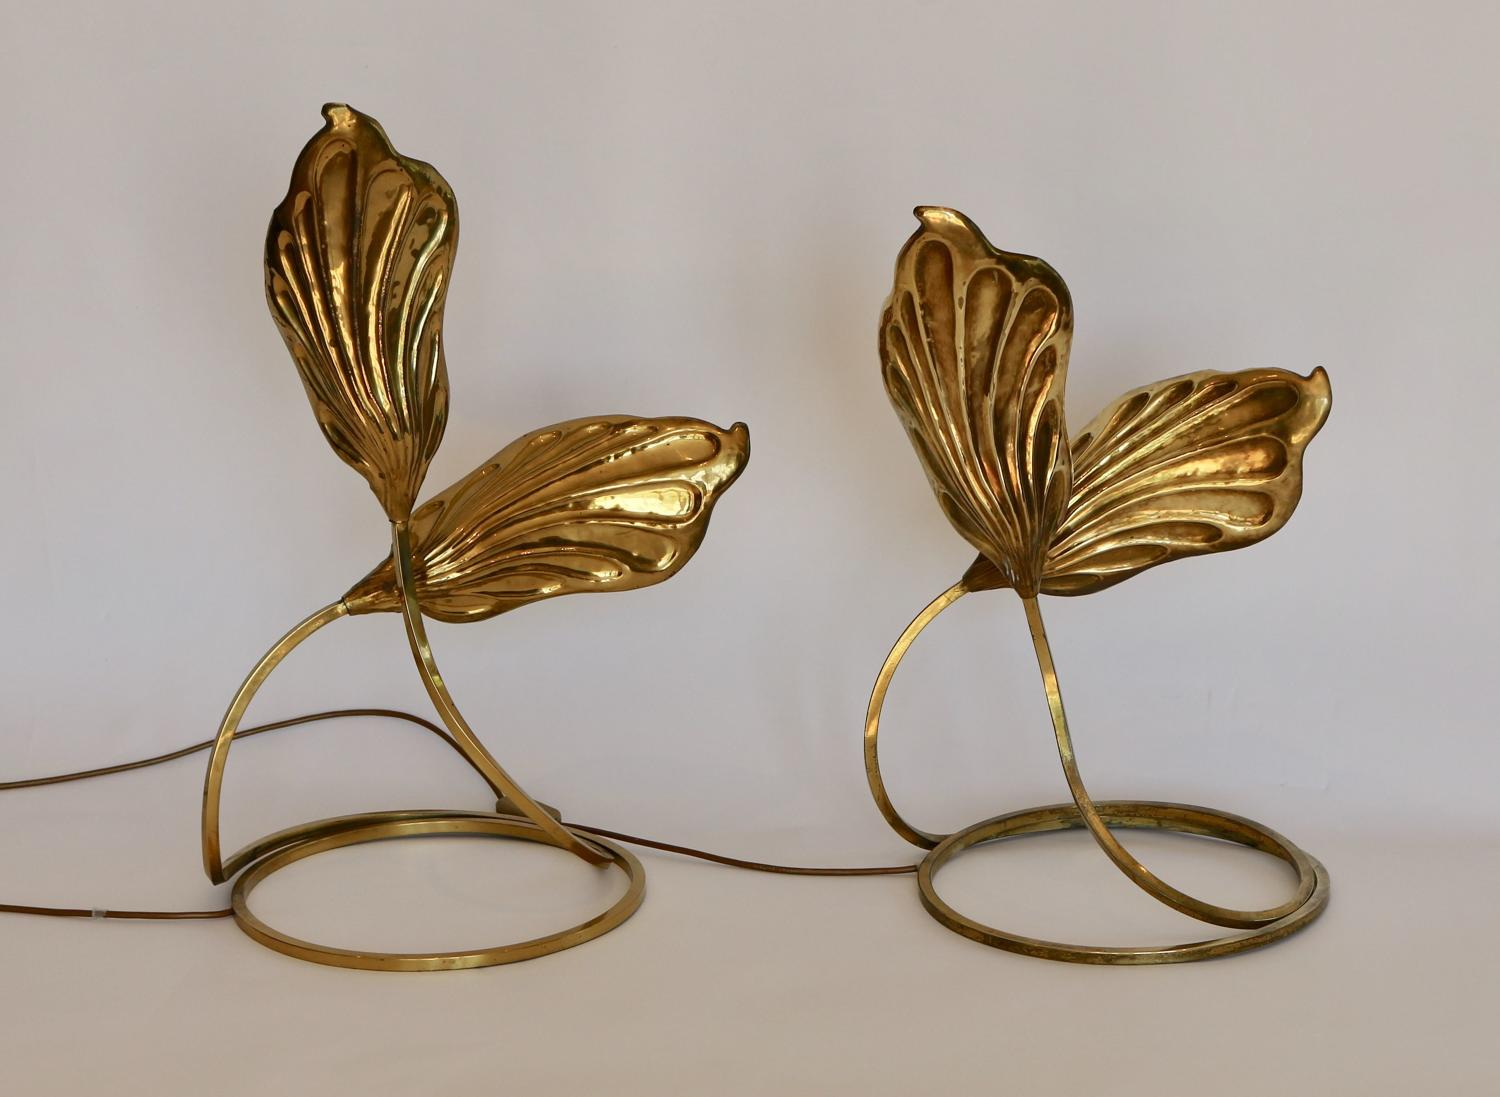 Pair of brass table leaf table lamps